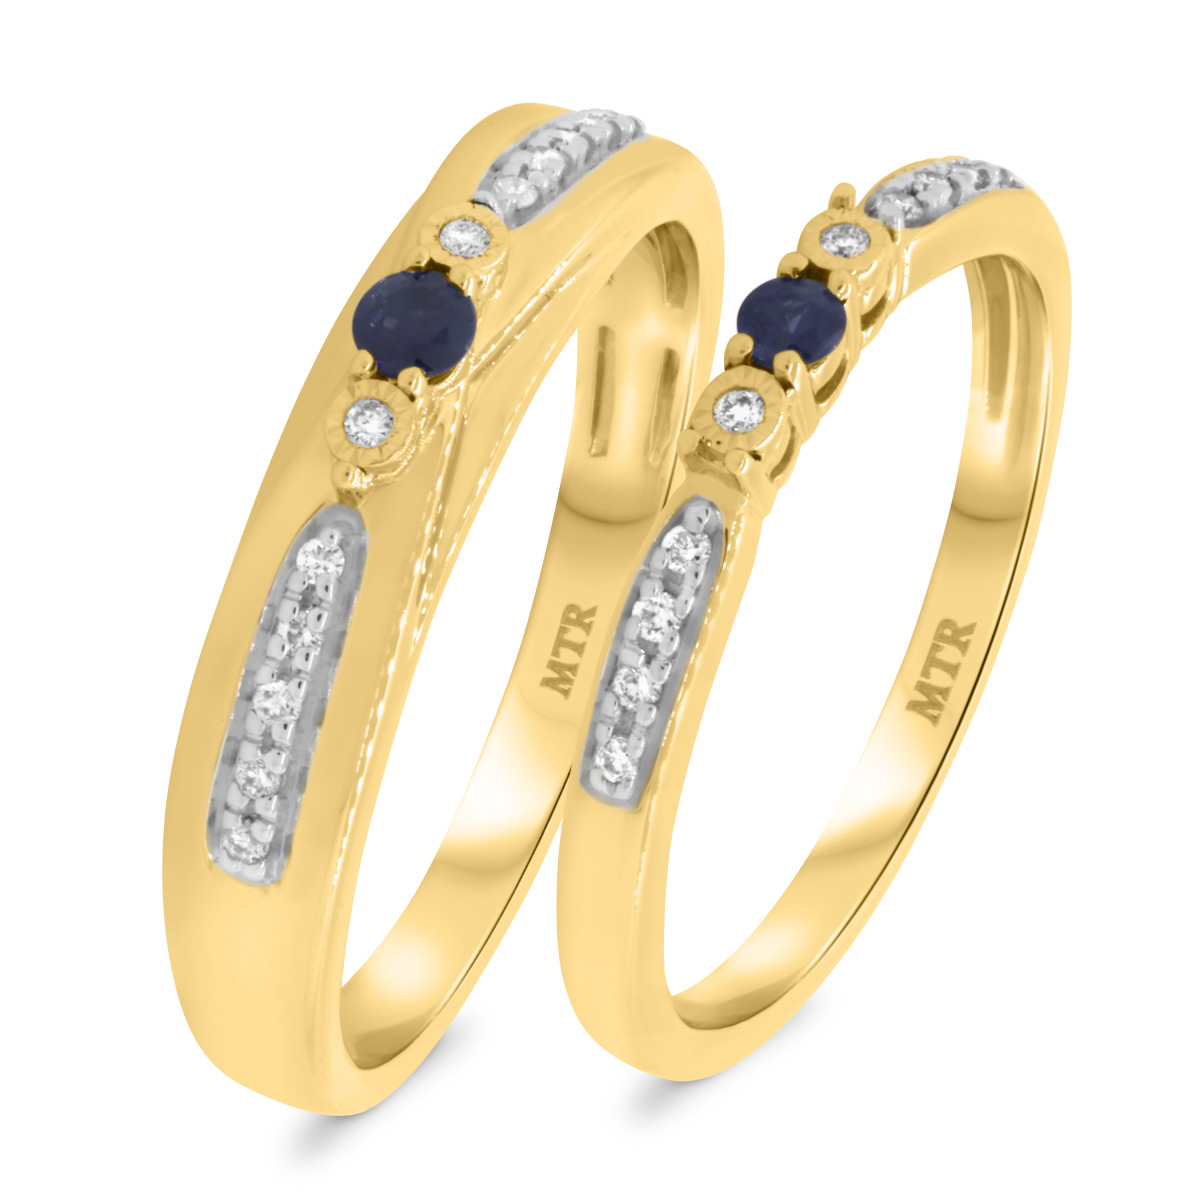 1/3 CT. T.W. Sapphire Matching Wedding Band Set 10K Yellow Gold